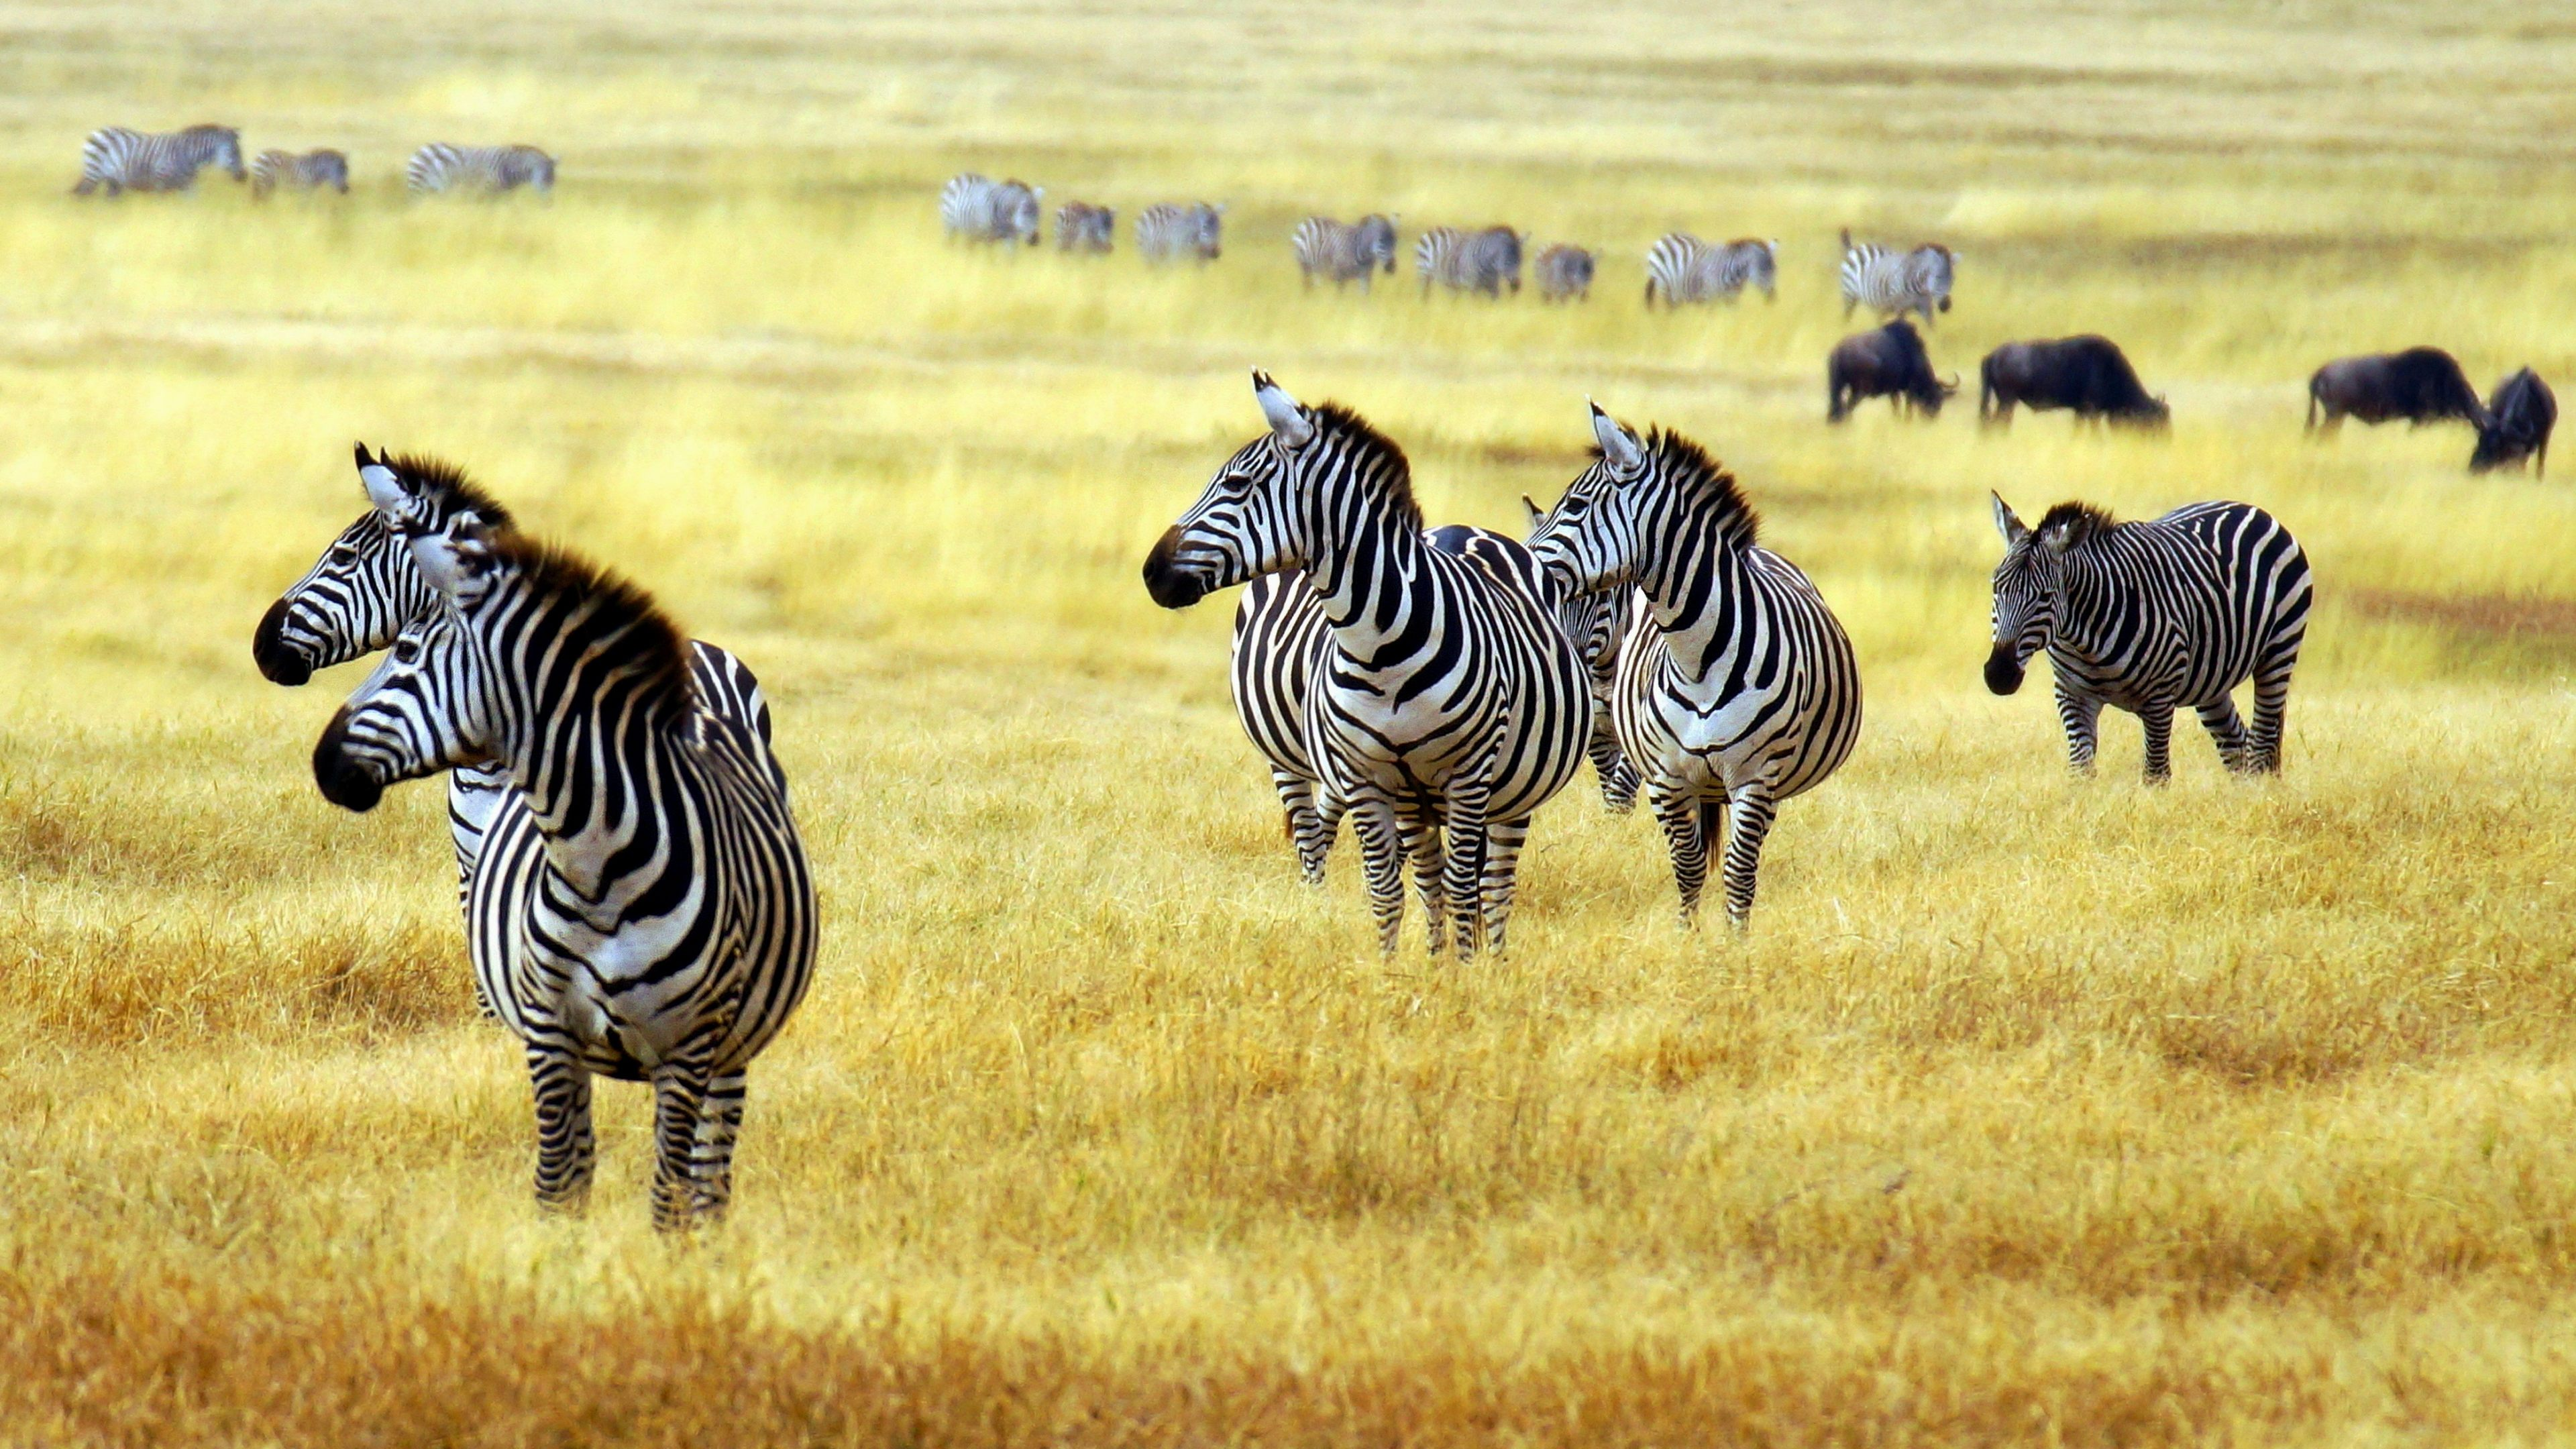 Zebras In African Savanna Forest Click To View